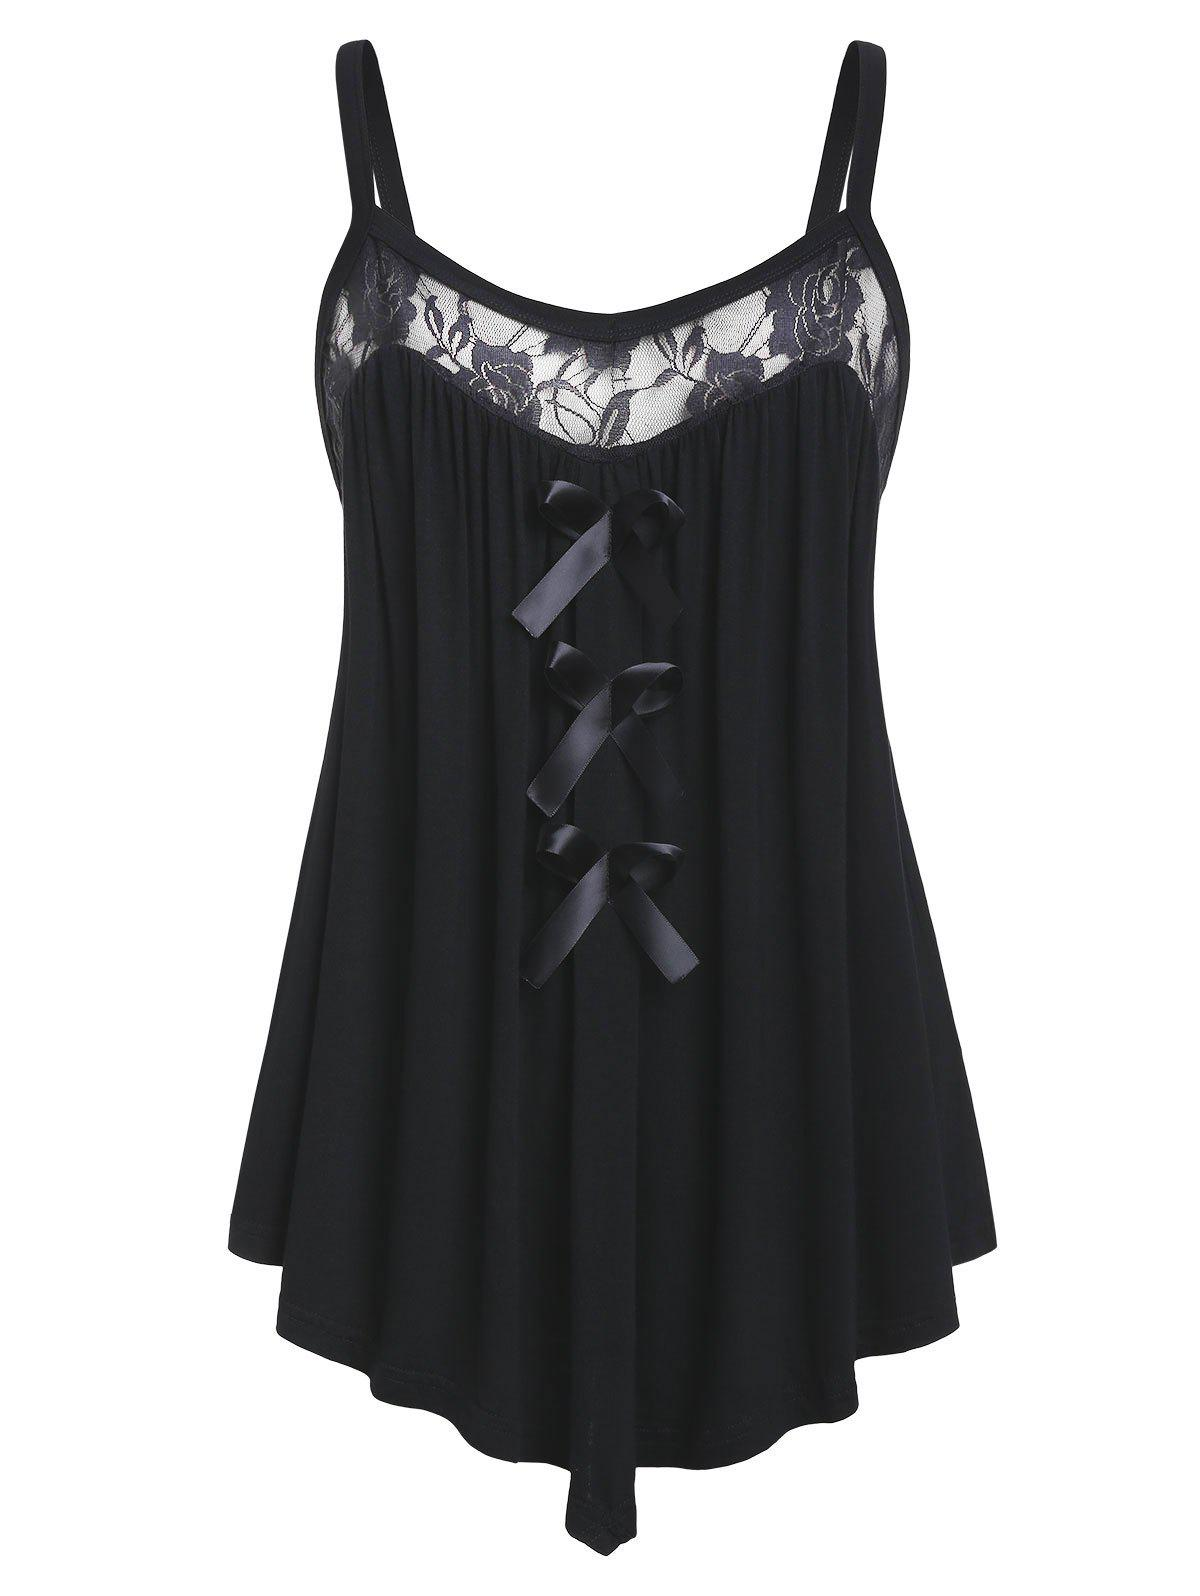 Plus Size Lace Panel Bowknot Embellished Cami Top - BLACK 4X